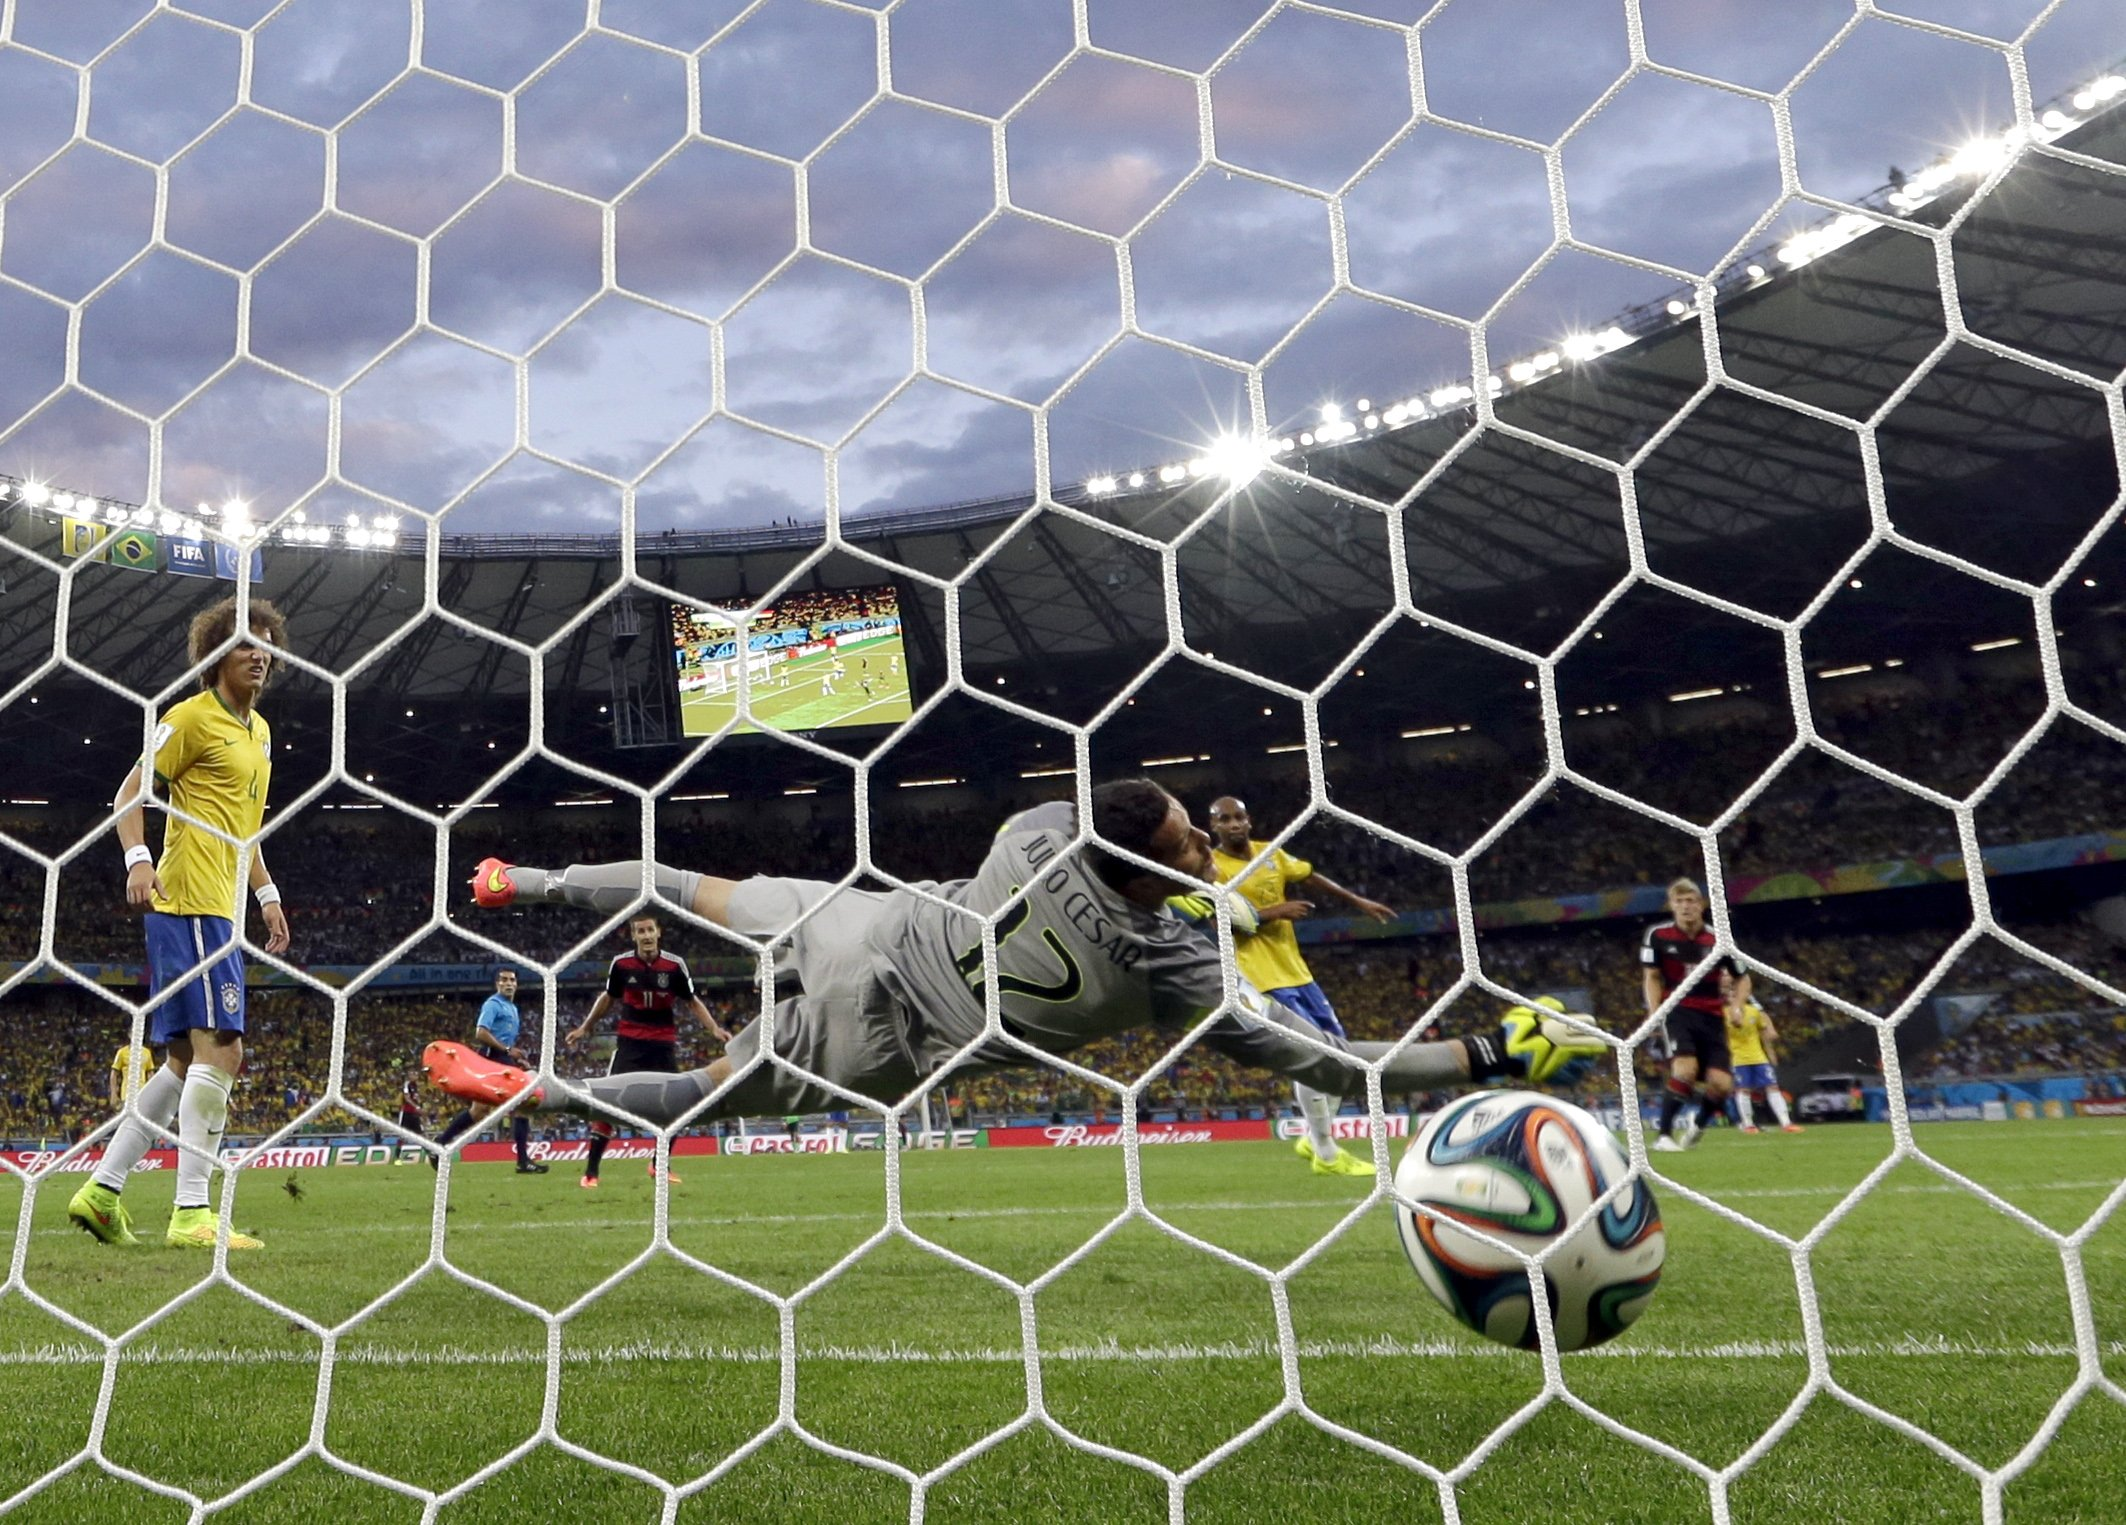 Brazil's goalkeeper Julio Cesar can not stop a shot by Germany's Toni Kroos to score his side's fourth goal at the Mineirao Stadium in Belo Horizonte, Brazil on July 8, 2014.